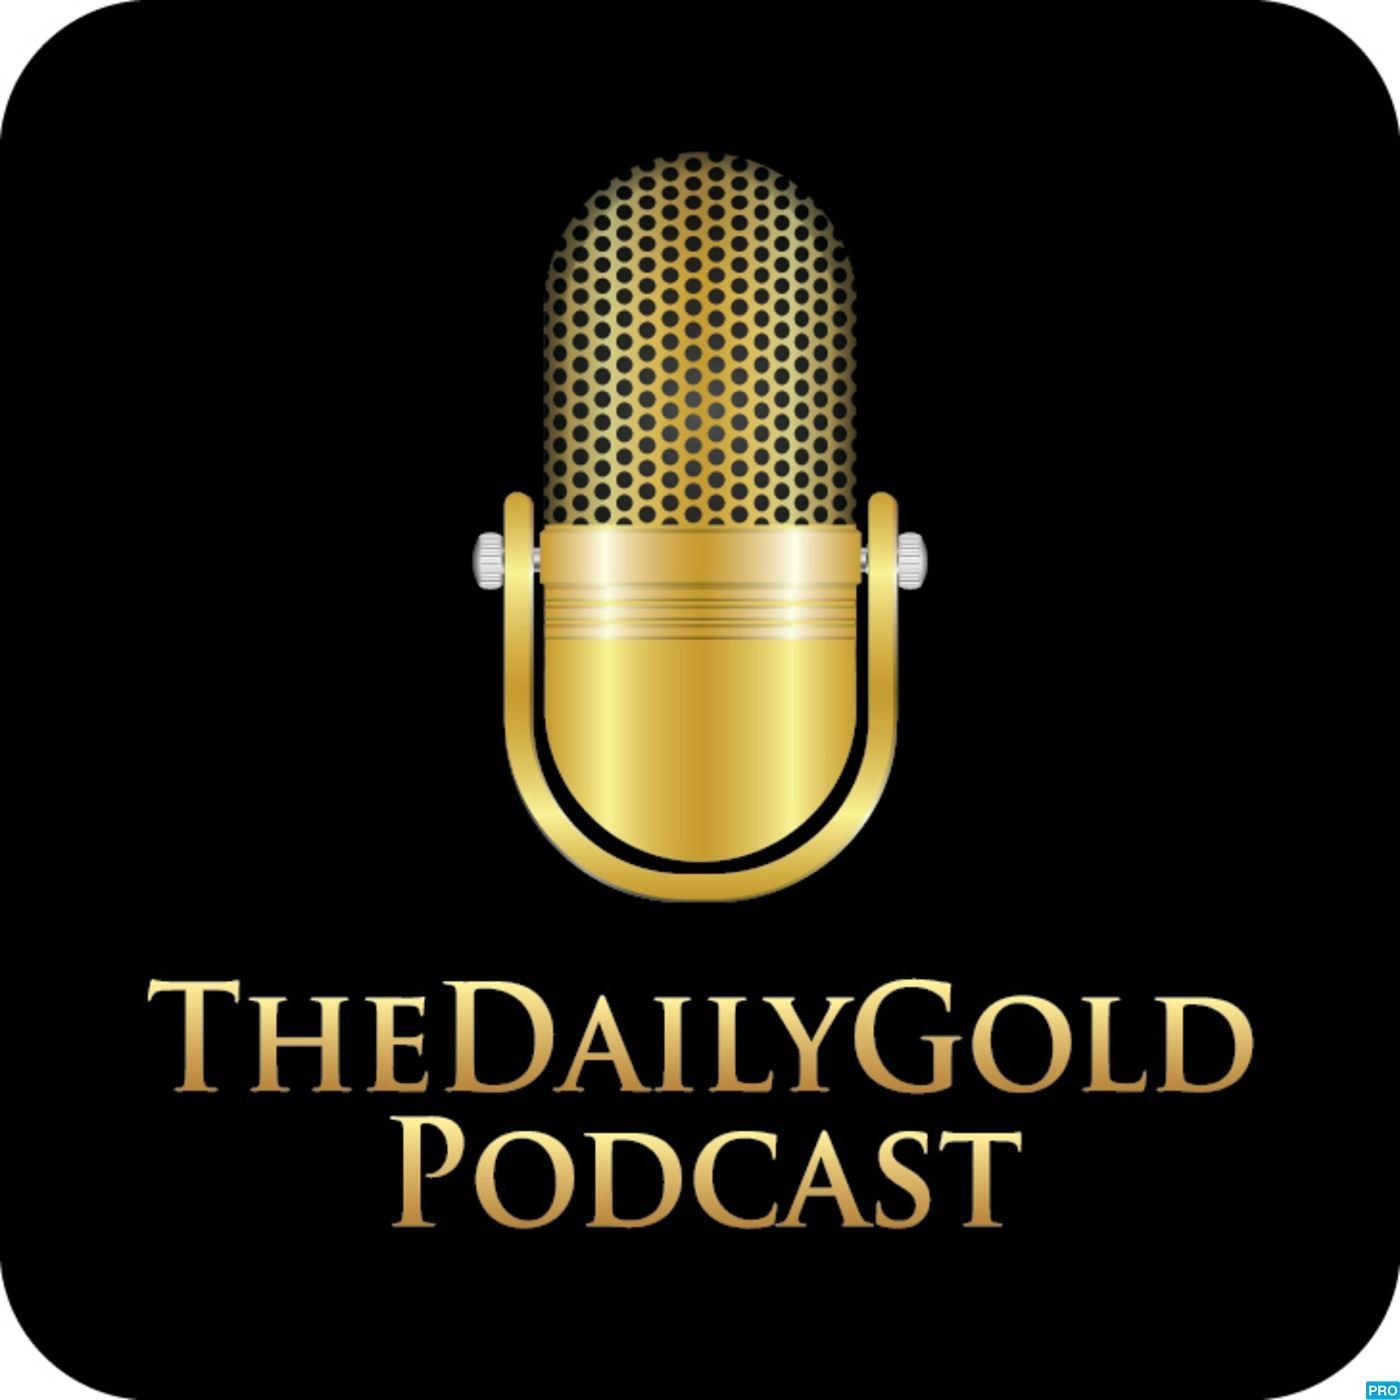 TheDailyGold Podcast